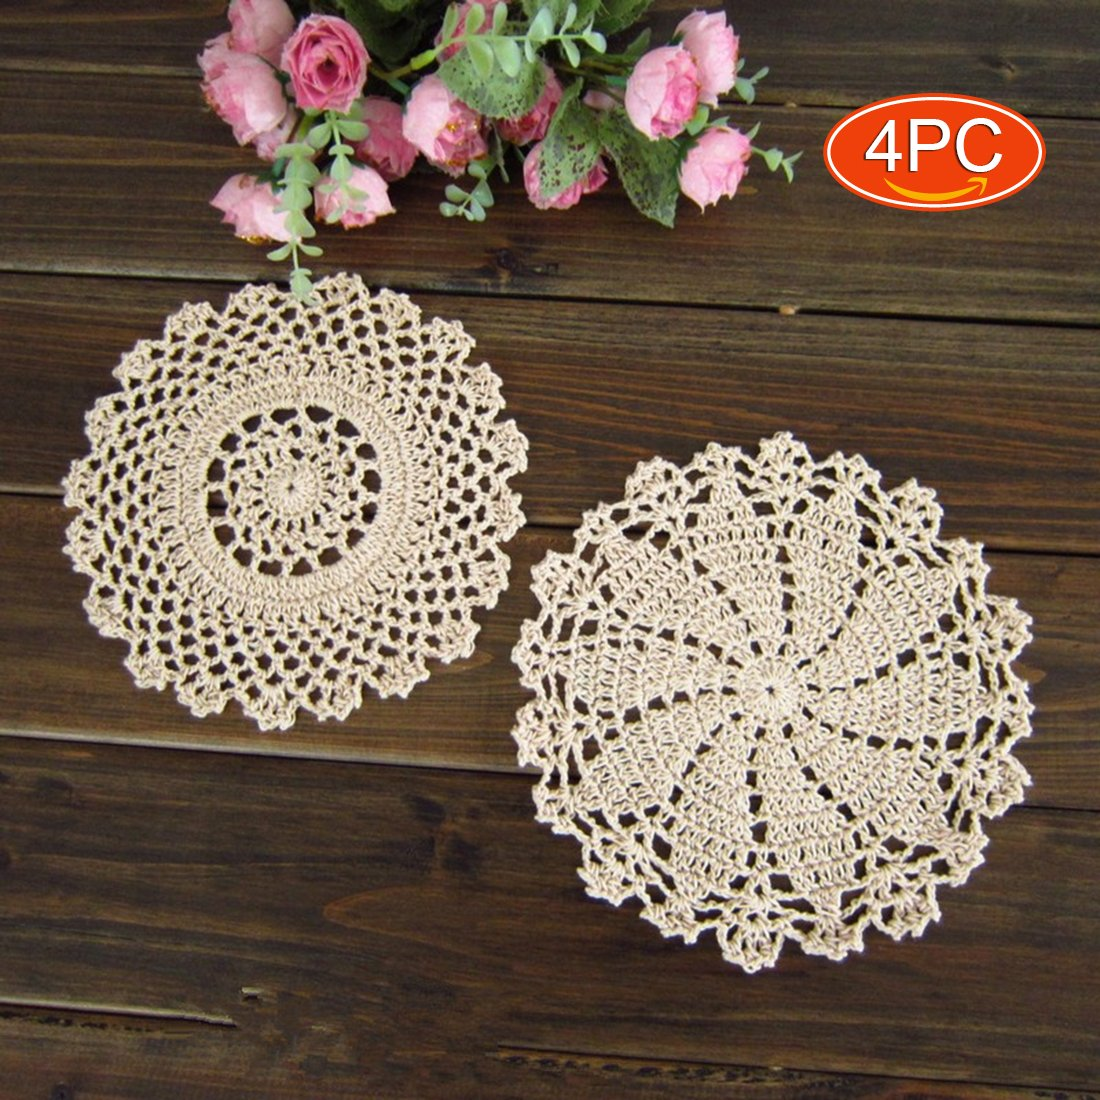 Elesa Miracle 7 Inch 4pc Handmade Round Crochet Cotton Lace Table Placemats Doilies Value Pack, Mix, Beige (4pc-7 Inch Beige) COMINHKPR125742